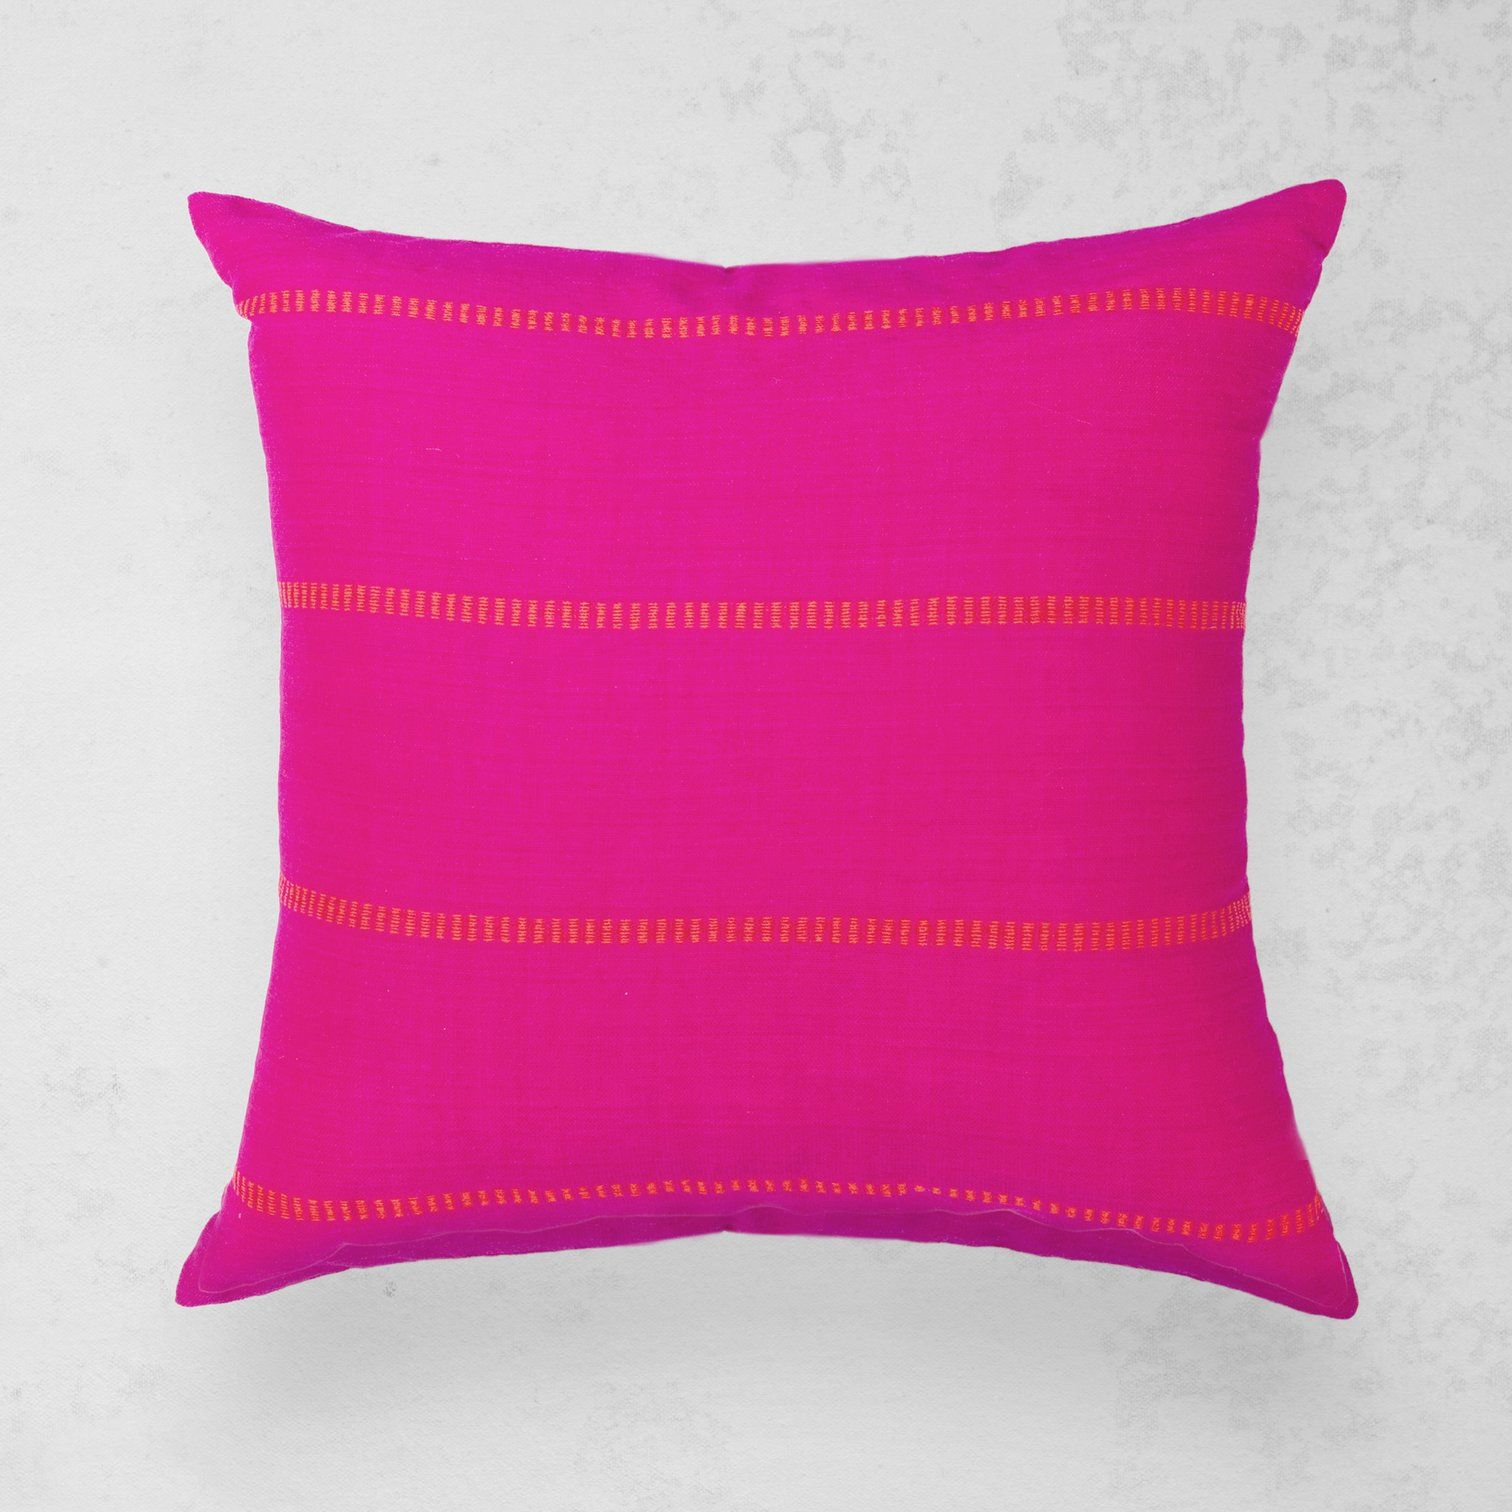 Tirisa pillow fuchsia in pillows pinterest pillows